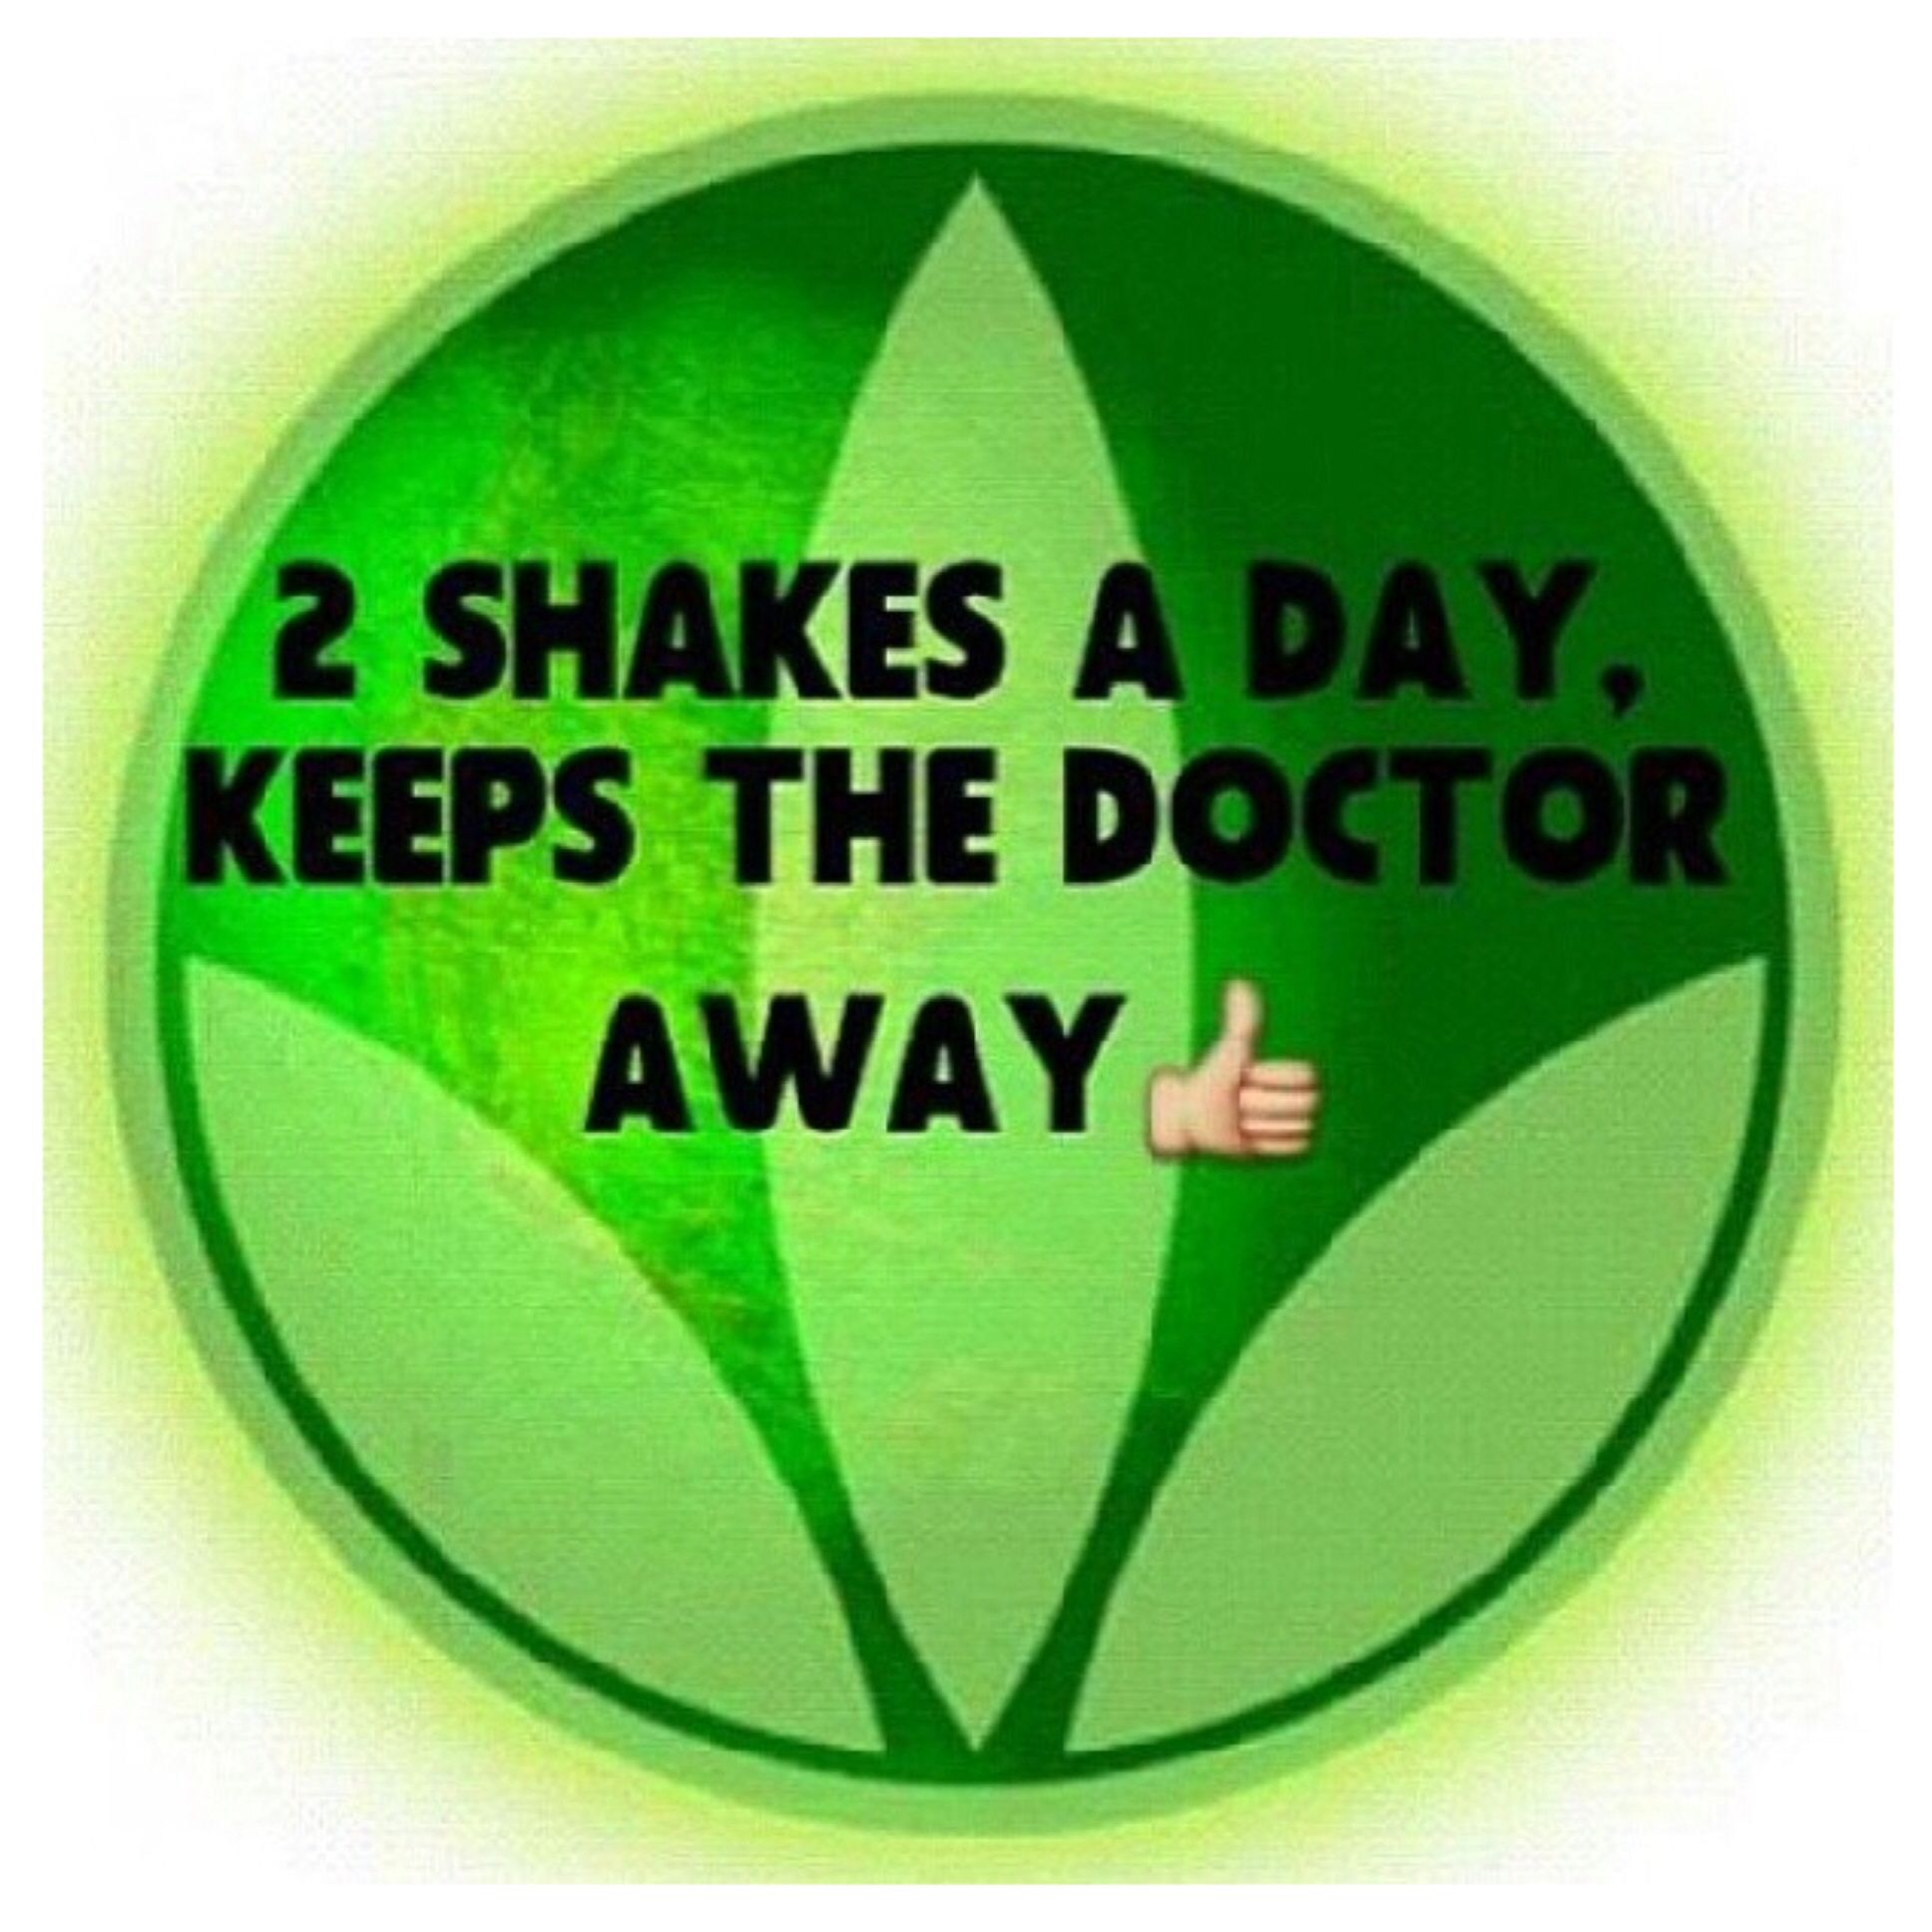 Herbalife Quotes Herbalife Has Changed My Life Let It Change Yours Too Www